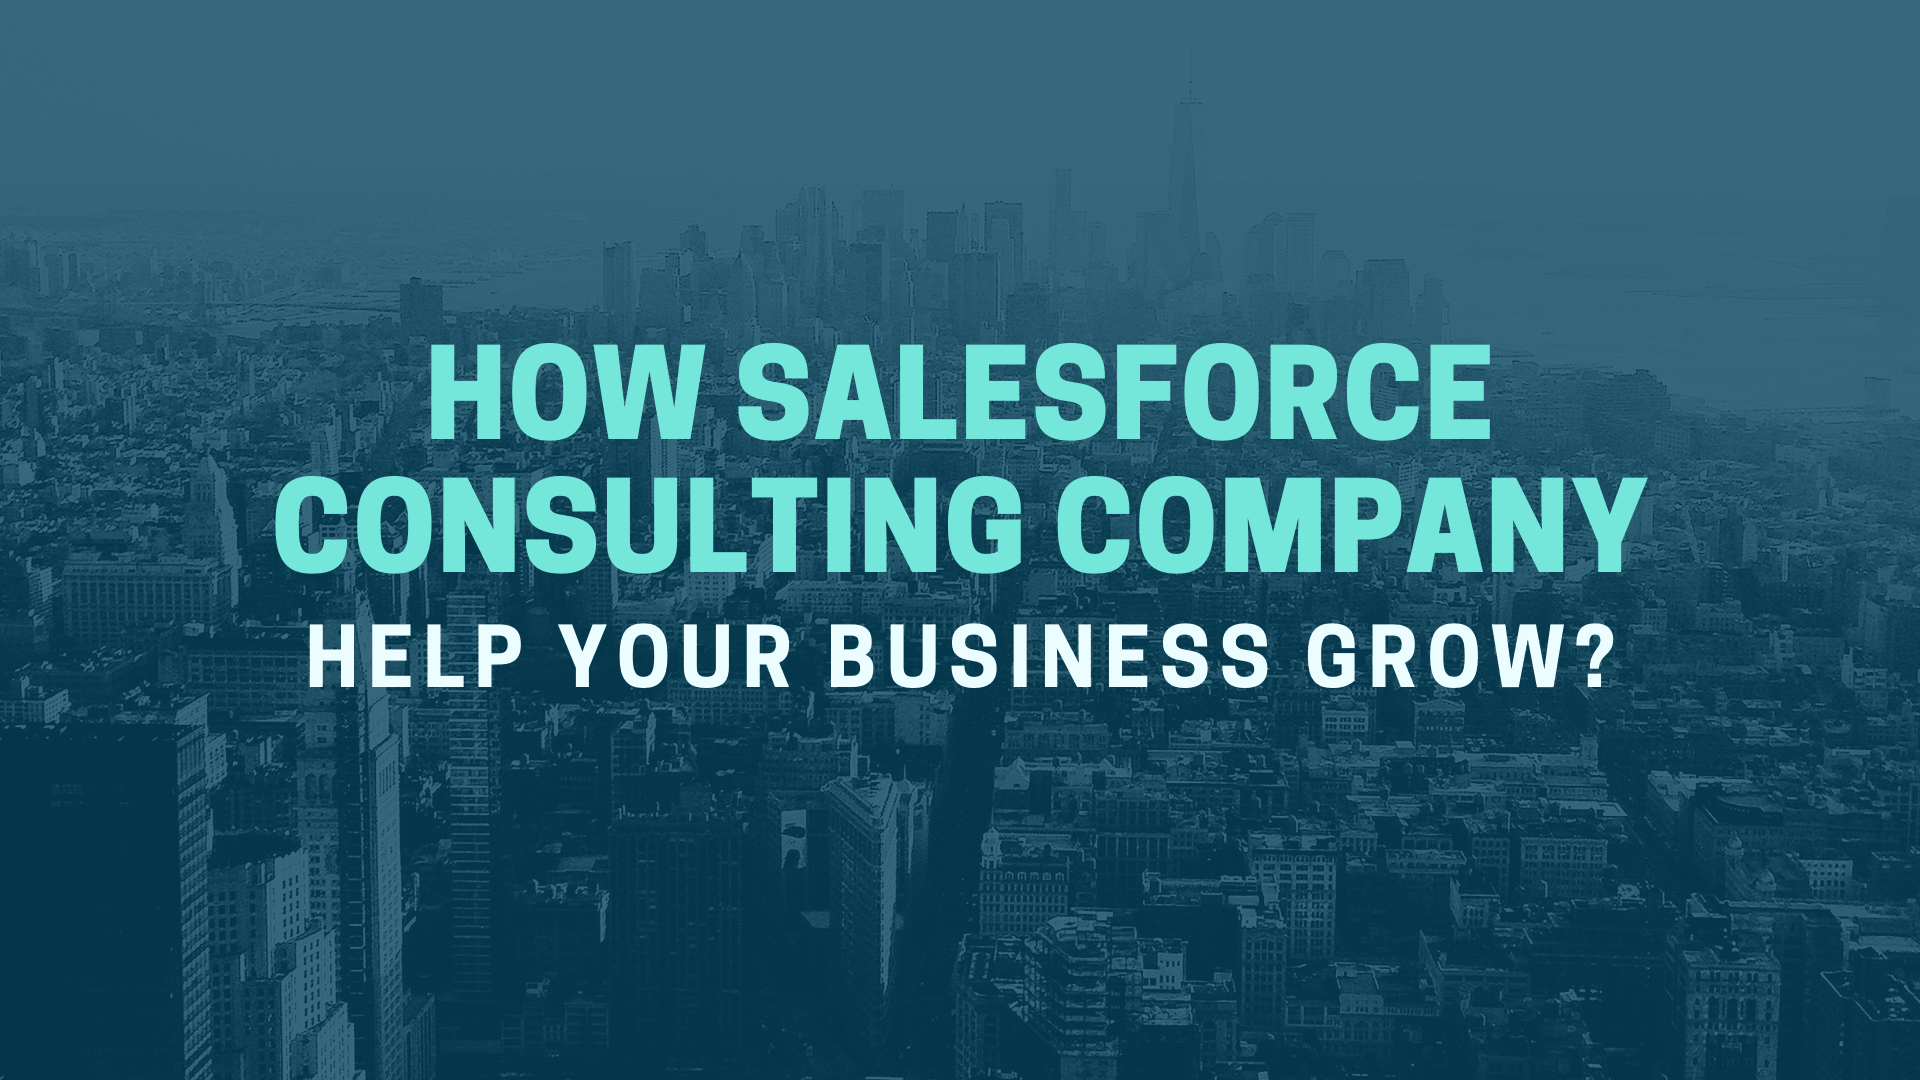 How Salesforce Consulting Company Can Help Your Business Grow